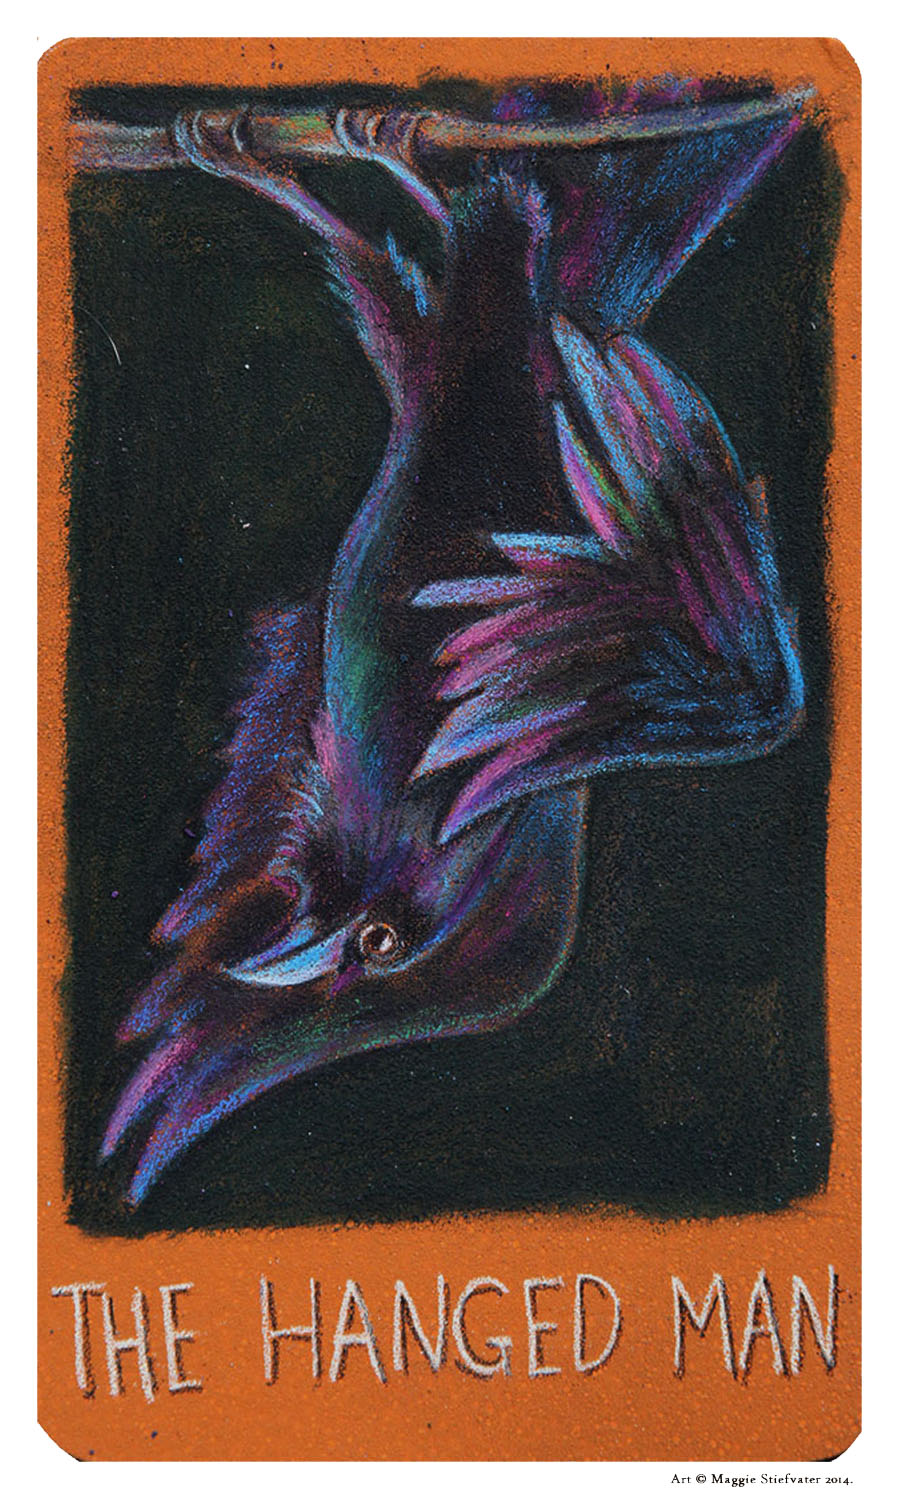 The Hanged Man Predictive Tarot Card Meanings: 'Blue Lily, Lily Blue' Tarot Card Blog Tour Reveal: The